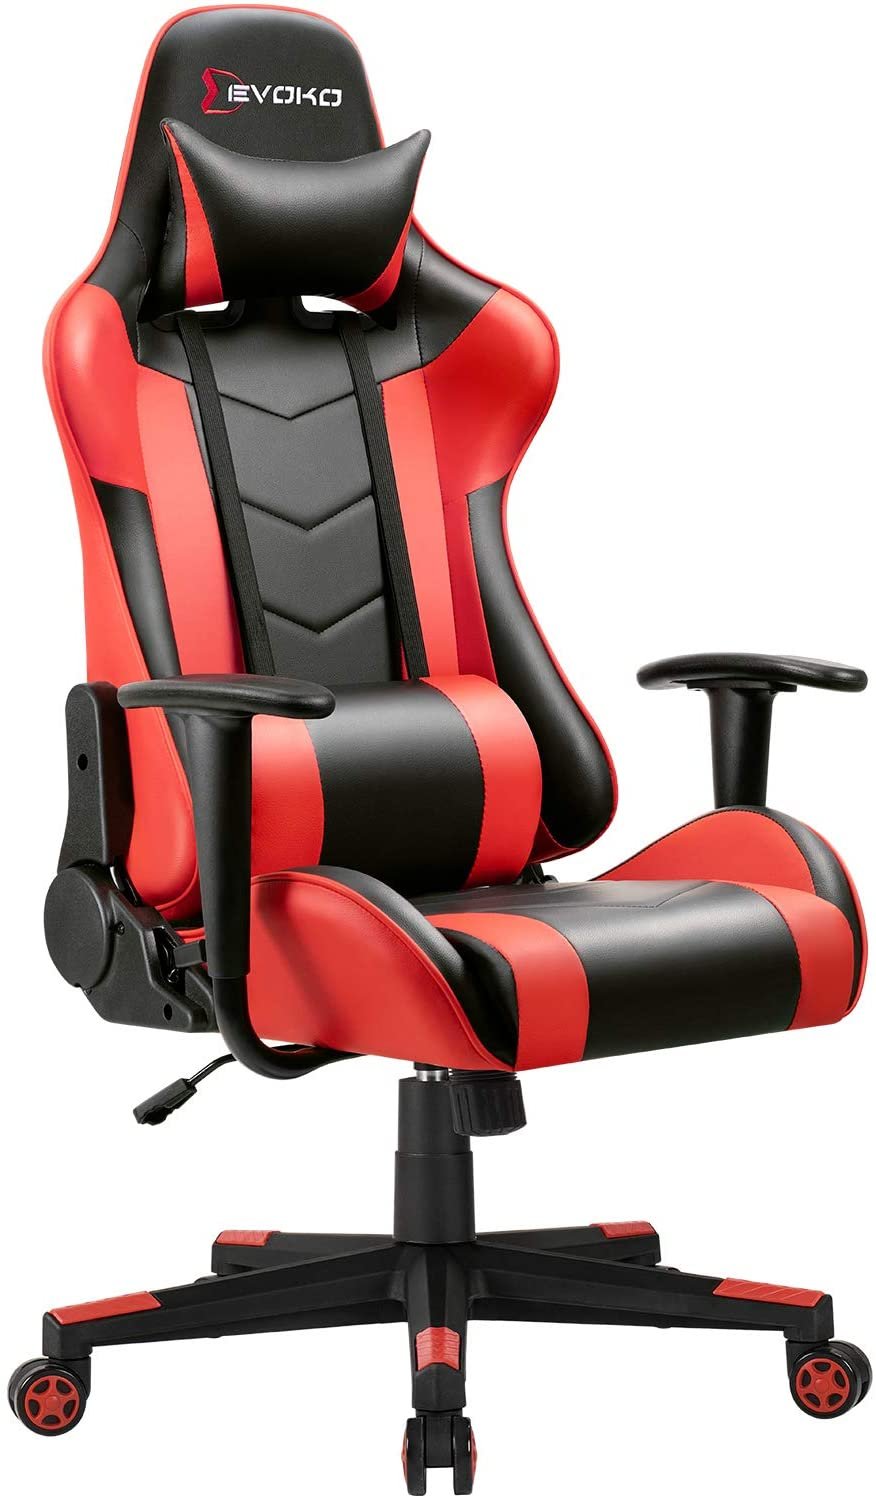 Top 5 Best Gaming Chairs under $100 1